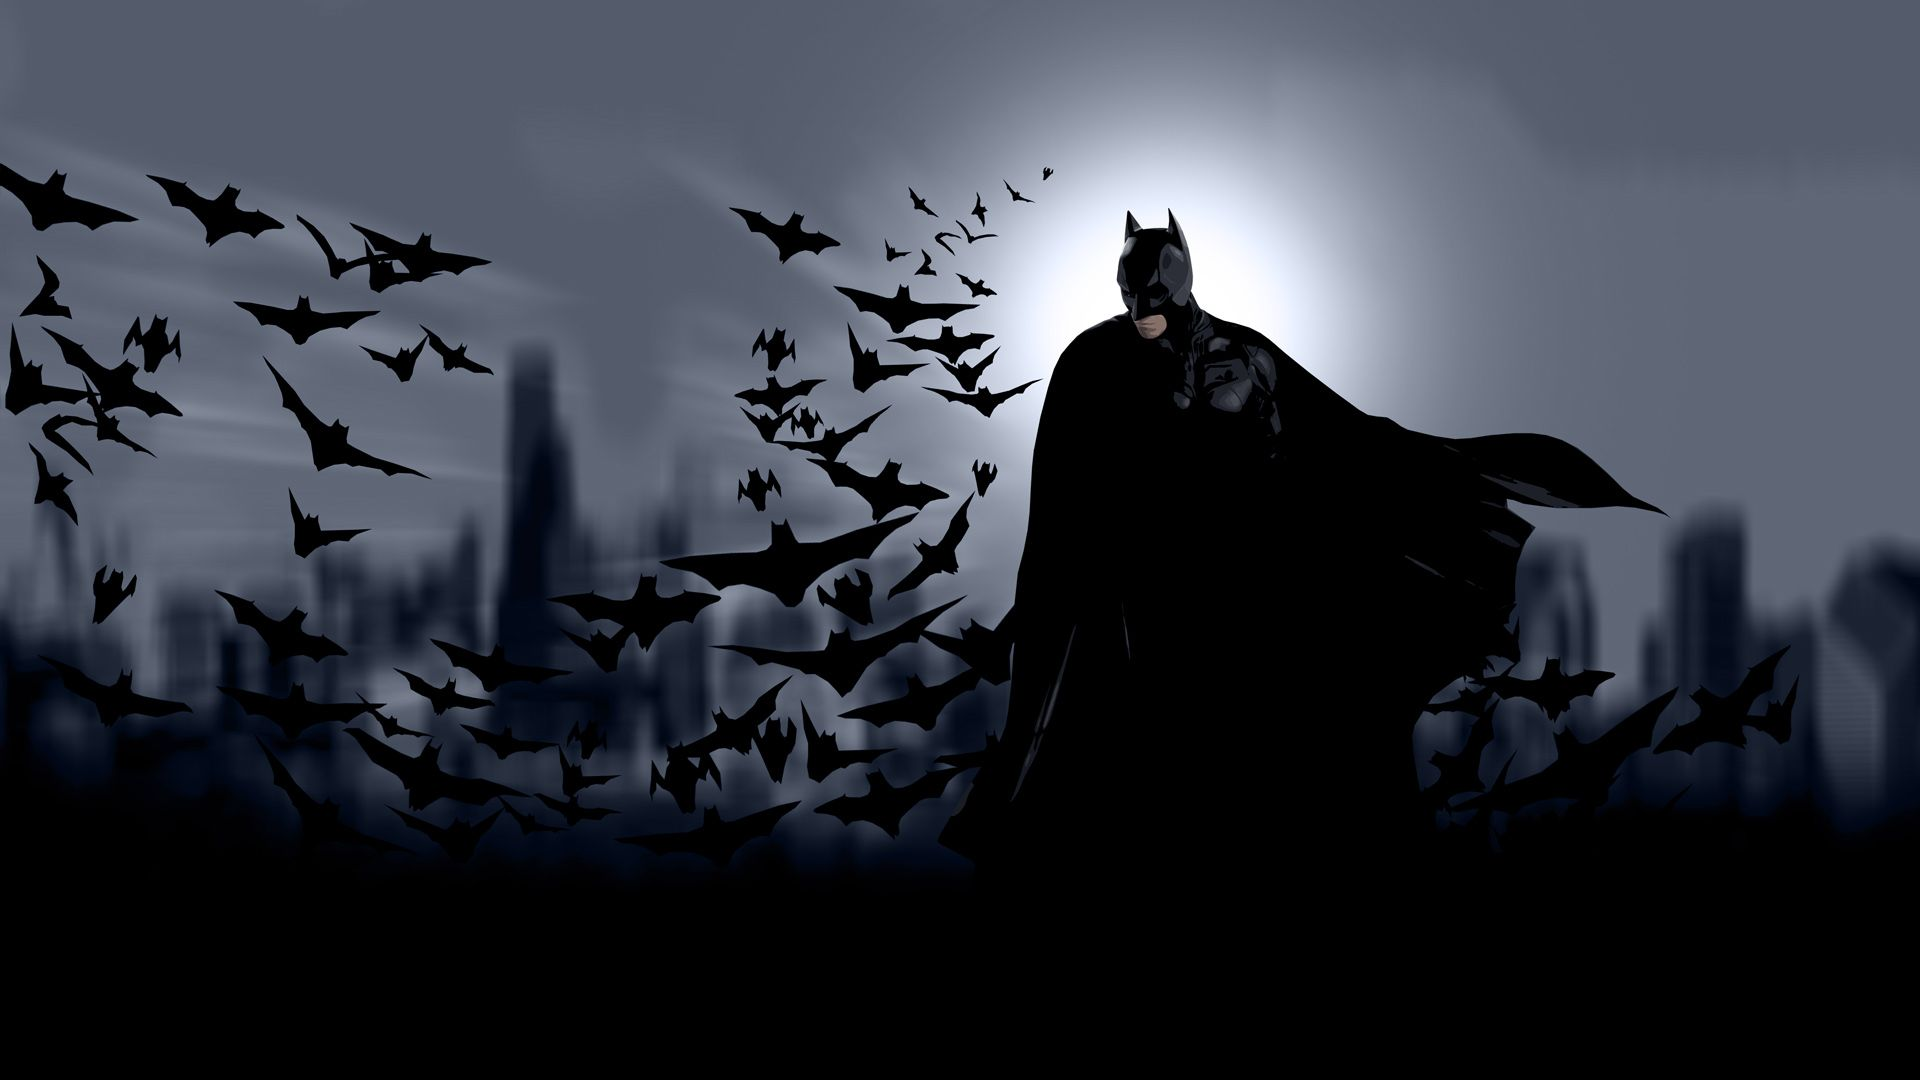 Amazing New Batman Slots Batman Comic Wallpaper Batman Backgrounds Hd Batman Wallpaper